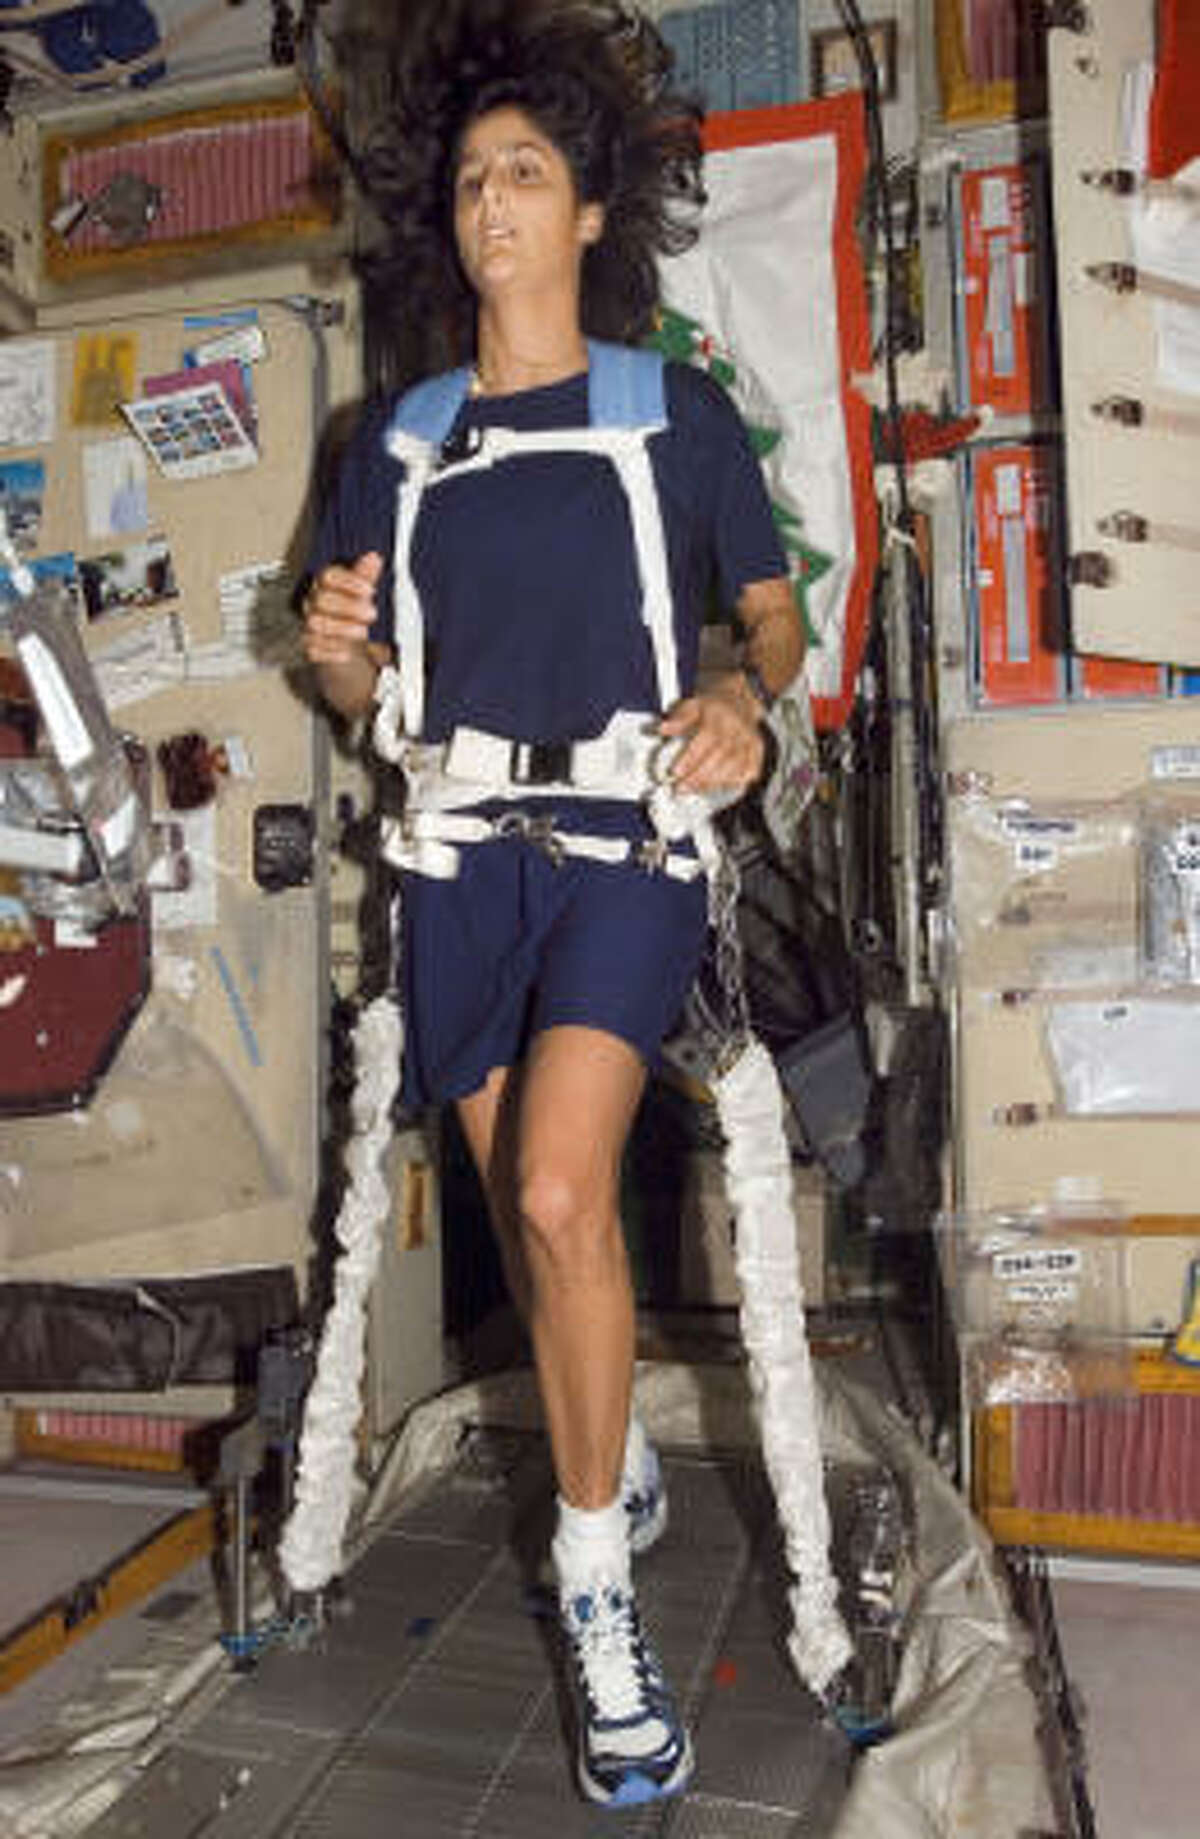 This file photo provided by NASA shows astronaut Sunita L. Williams tethered as she runs on a treadmill system aboard the international space station this past December.